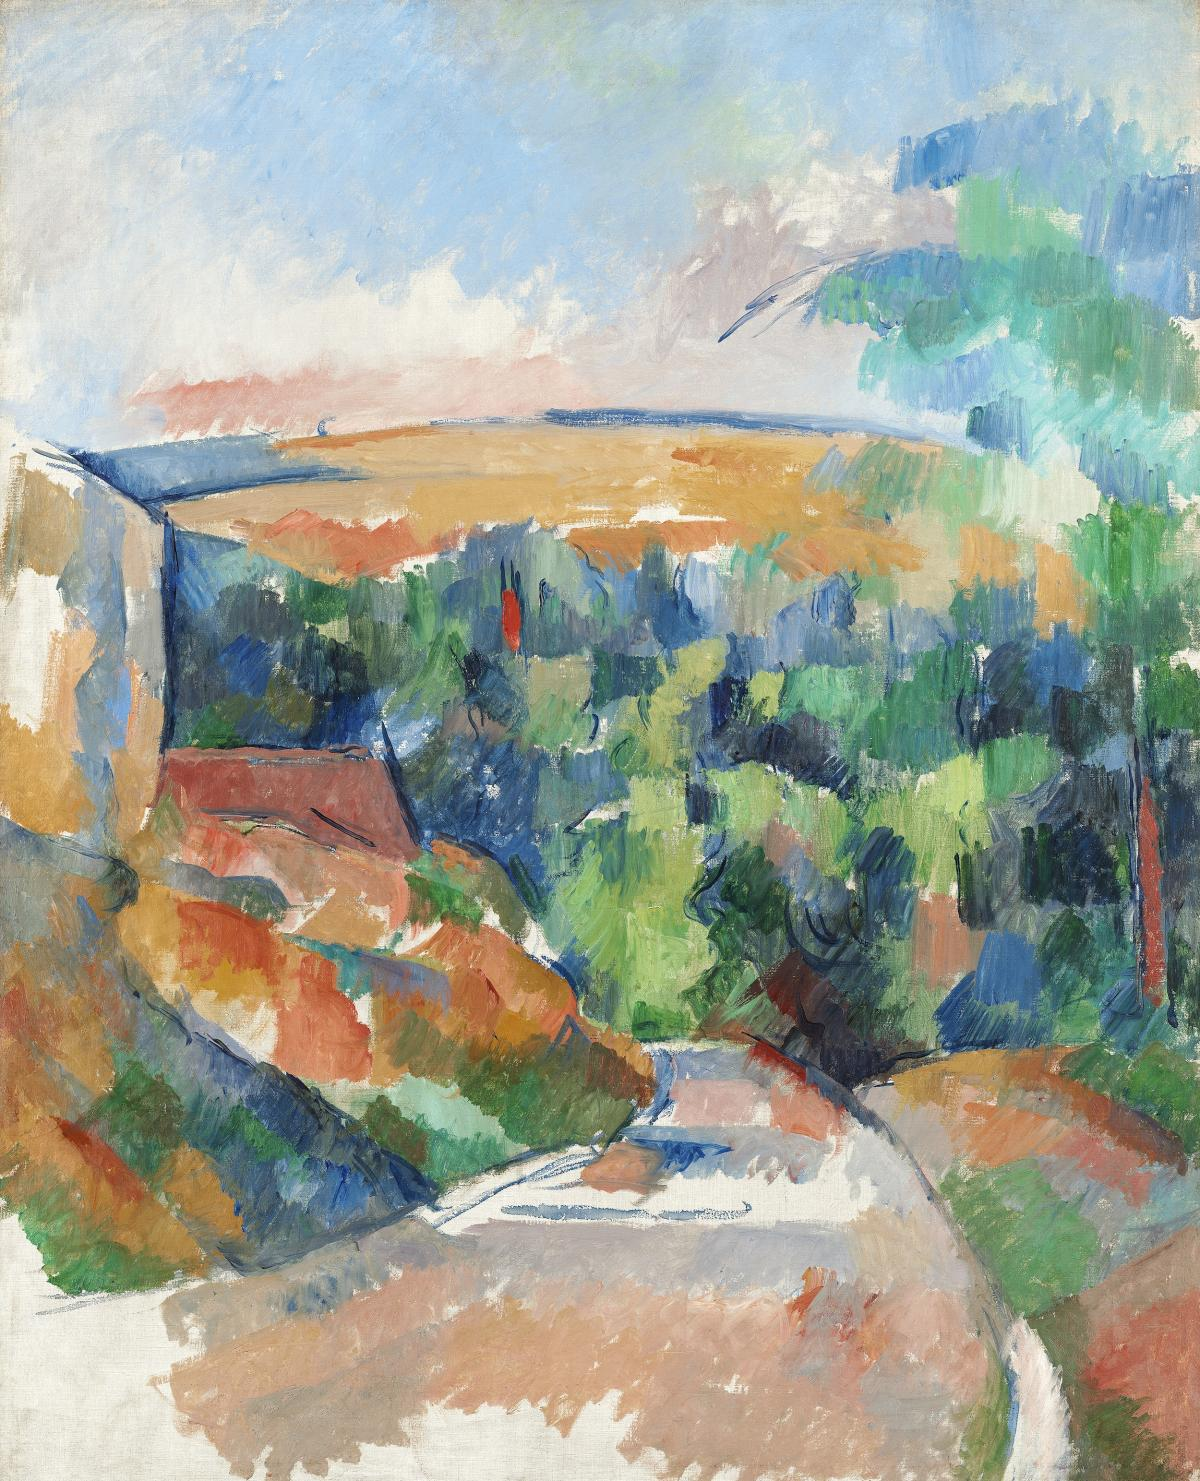 The Bend in the Road (ca. 1900–1906) by Paul Cézanne. Original from The National Gallery of Art.